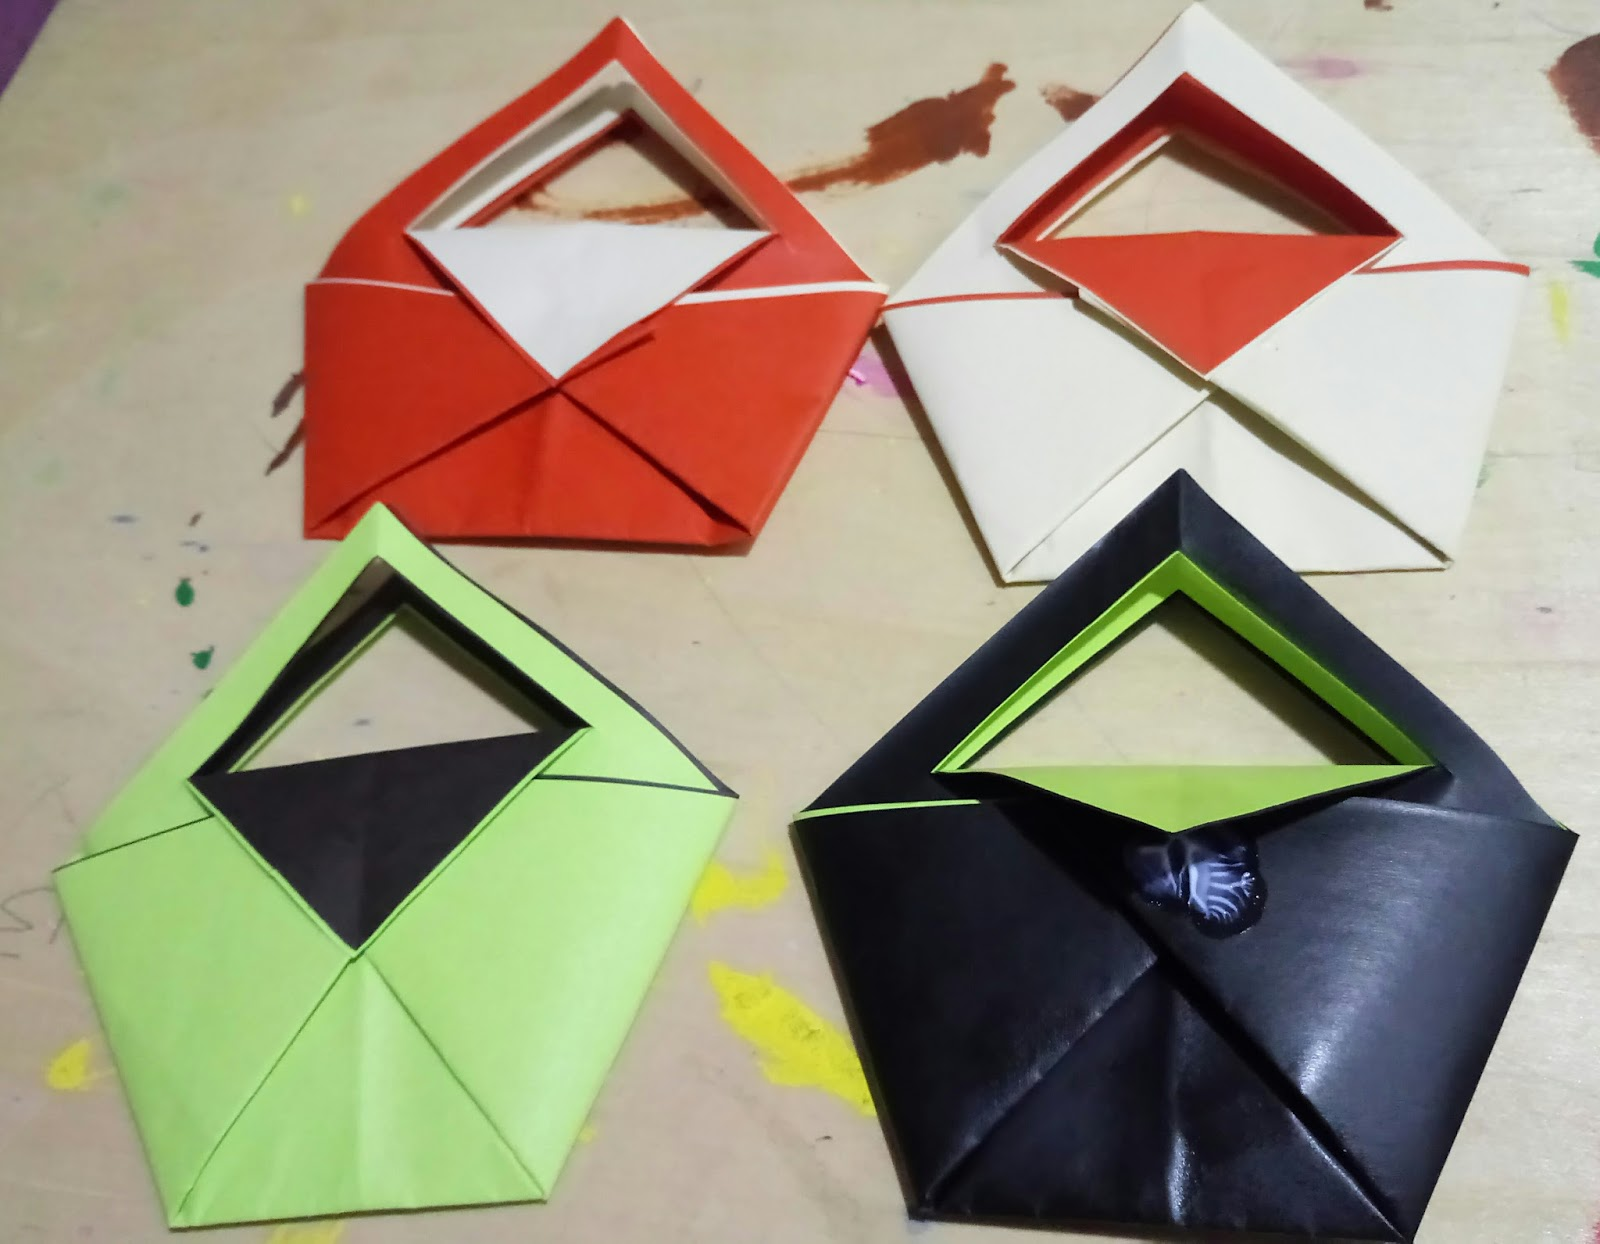 Life's little treasures: Easy Origami purse 👛 kids craft - photo#24